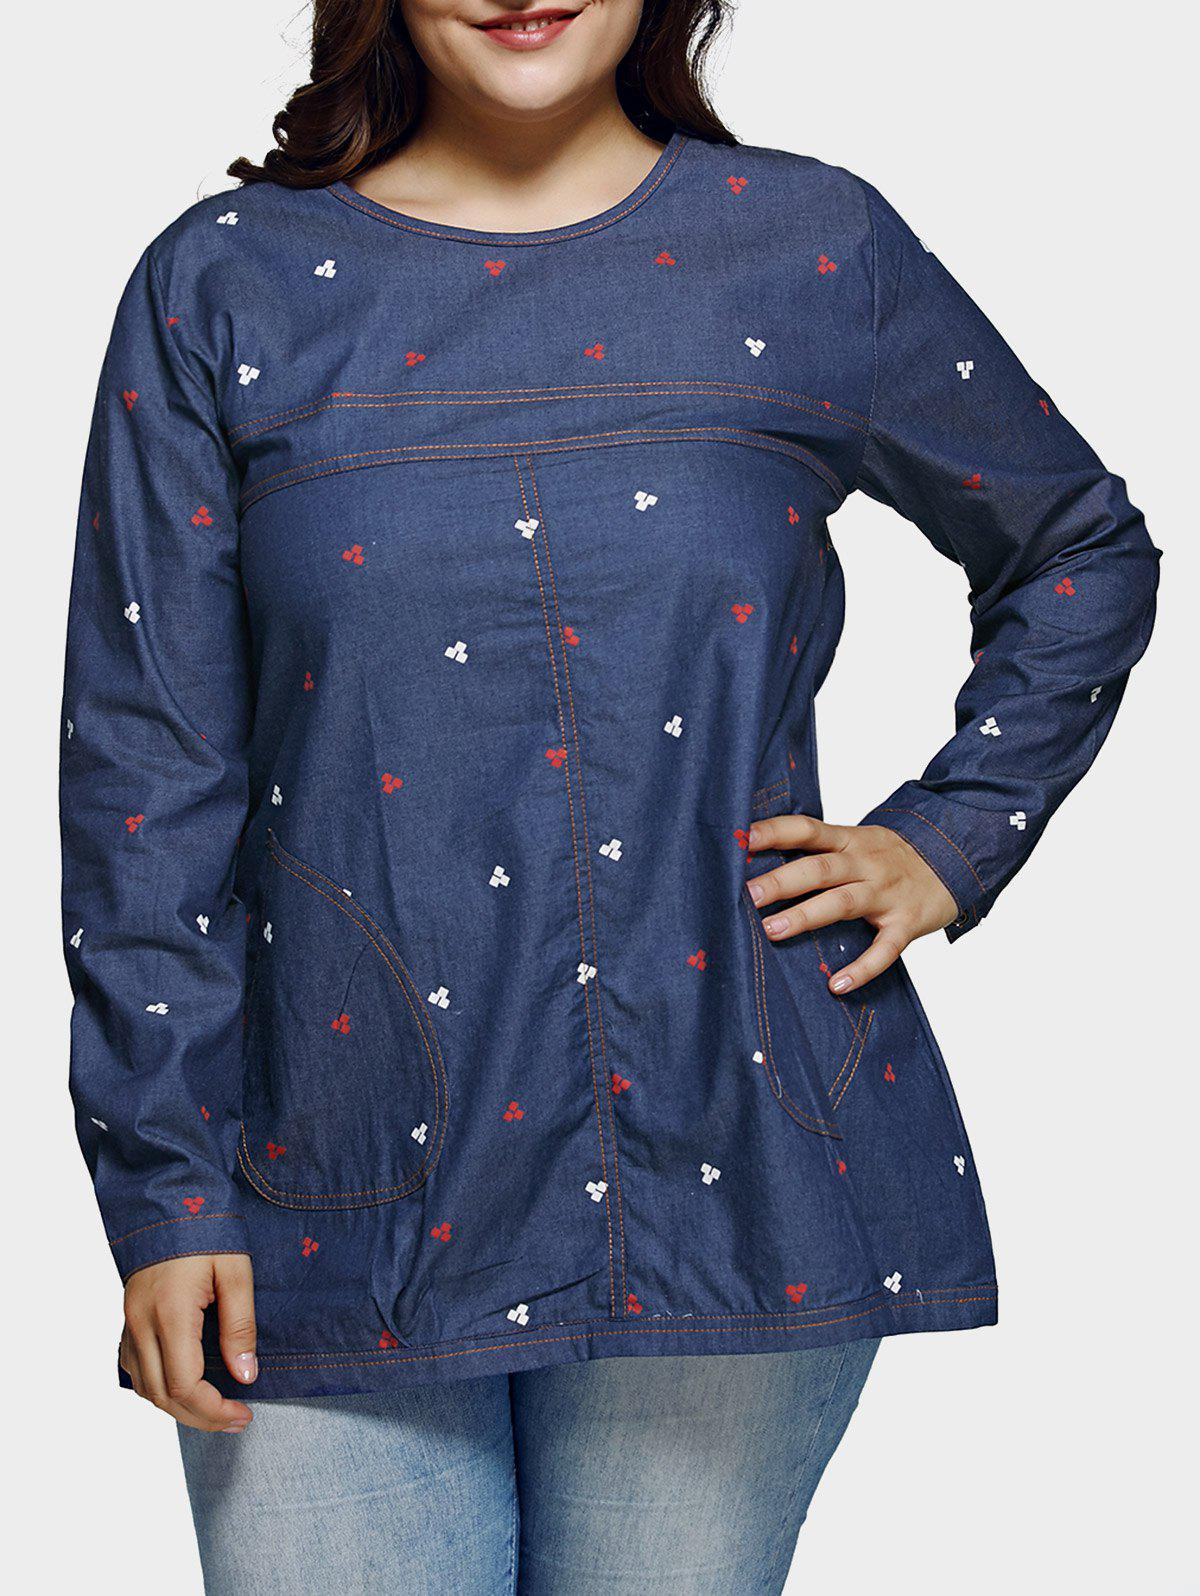 Plus Size Casual Place Motif Denim Blouse